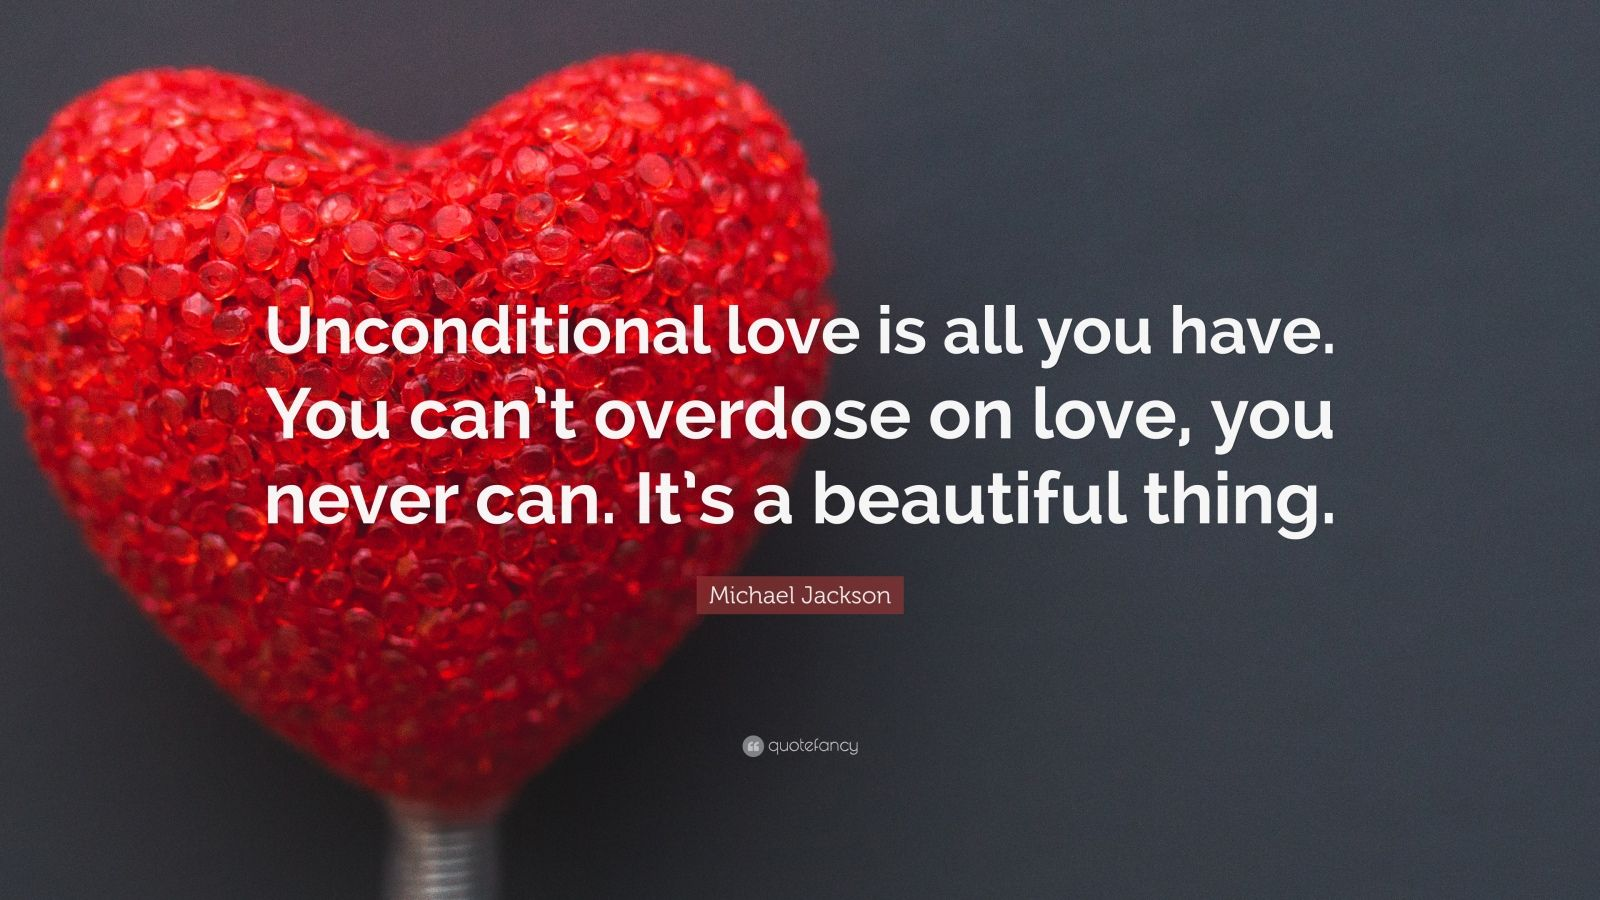 Unconditional Love Quotes Wallpaper : Michael Jackson Quote: ?Unconditional love is all you have ...